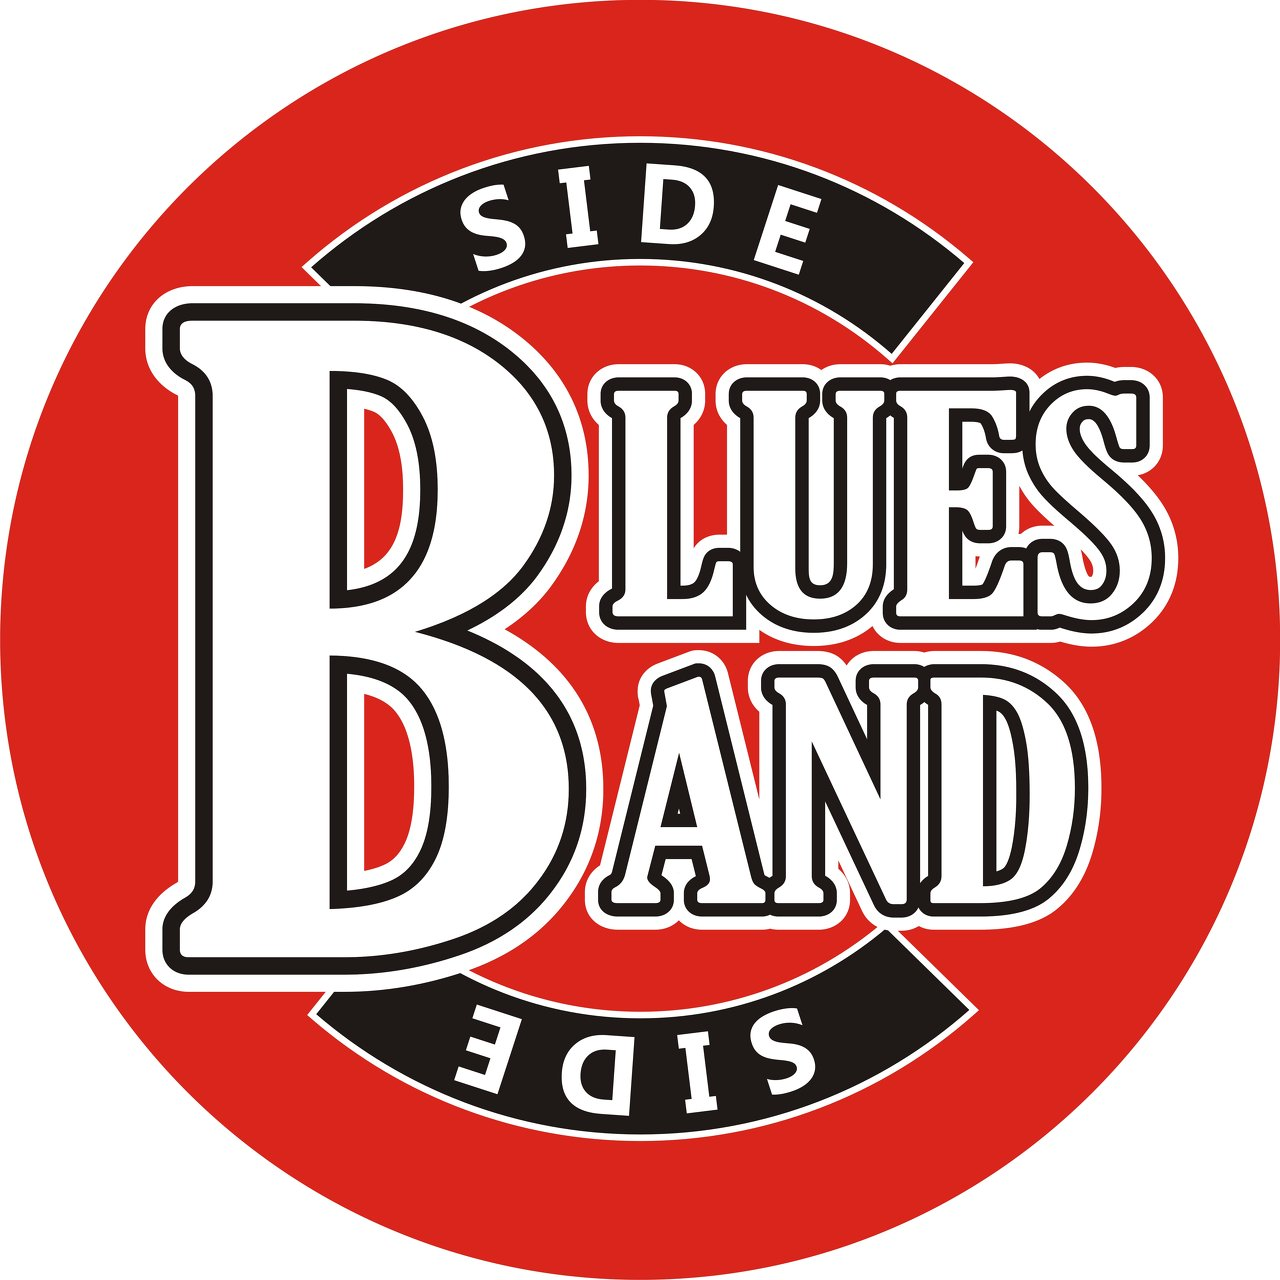 Side Blues